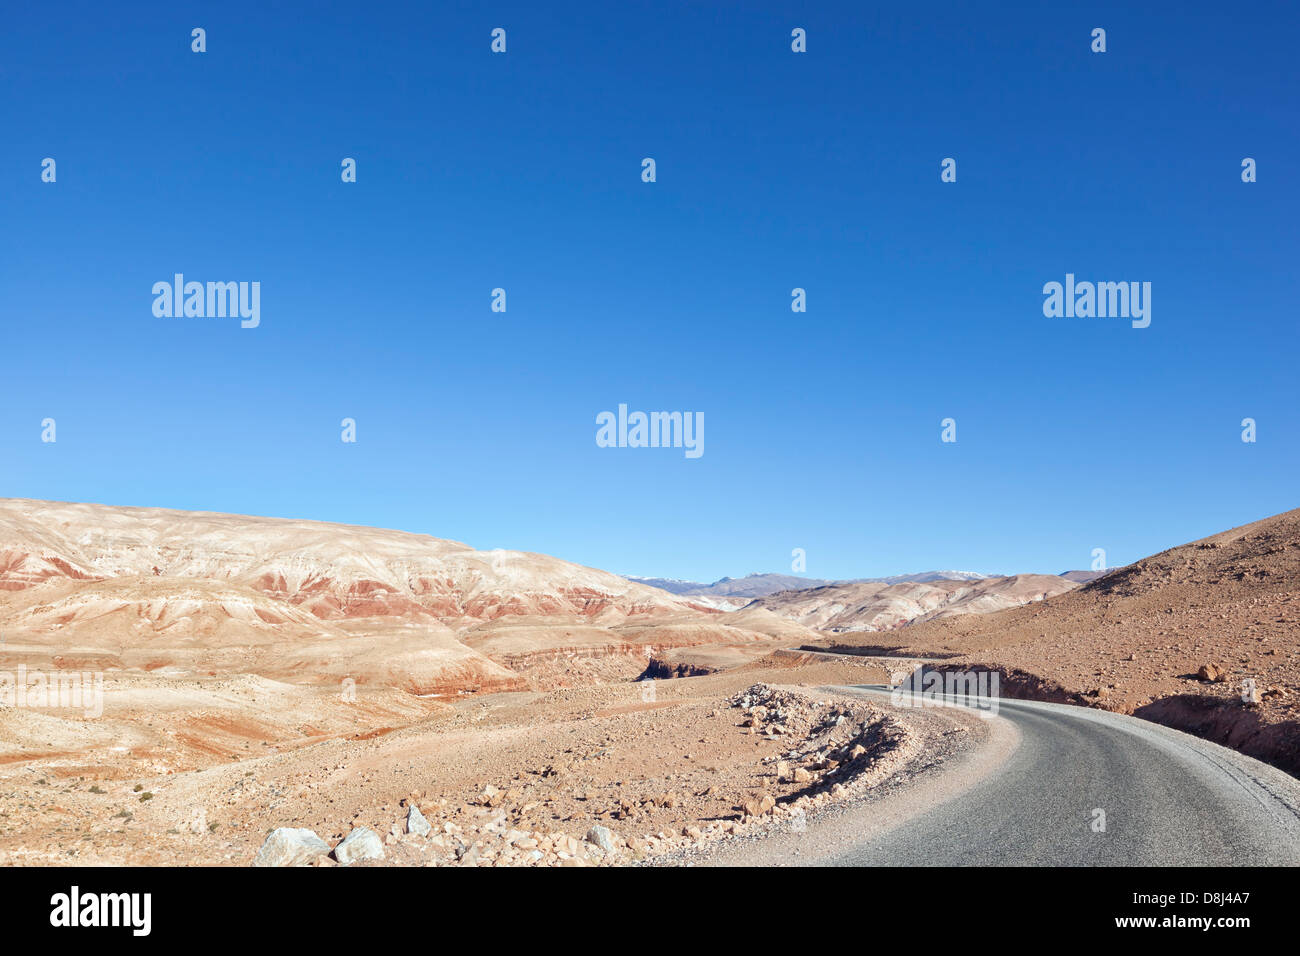 High Atlas Mountains against clear blue sky. - Stock Image